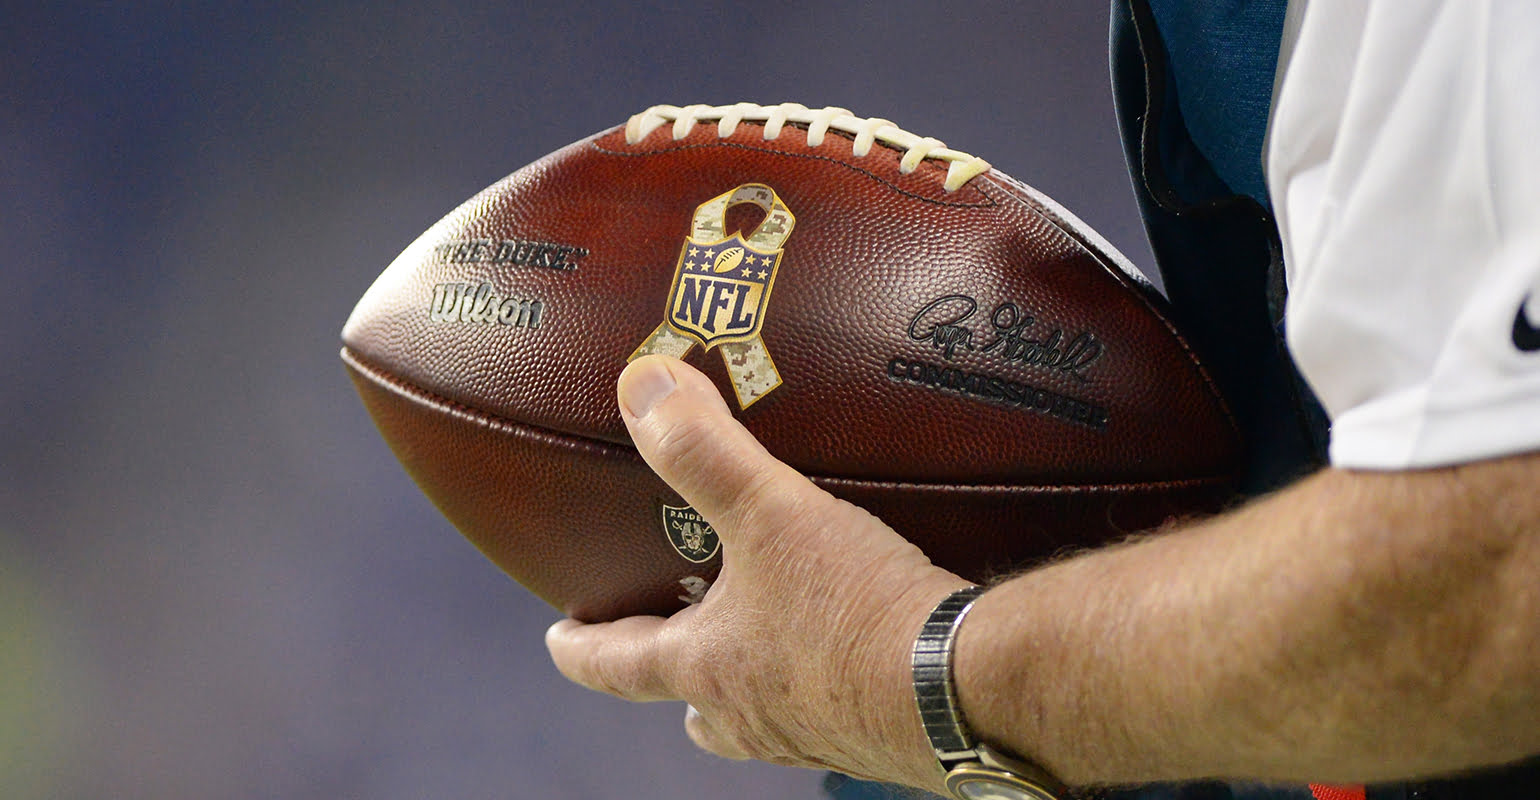 NFL Players Union Drafts Morgan Stanley